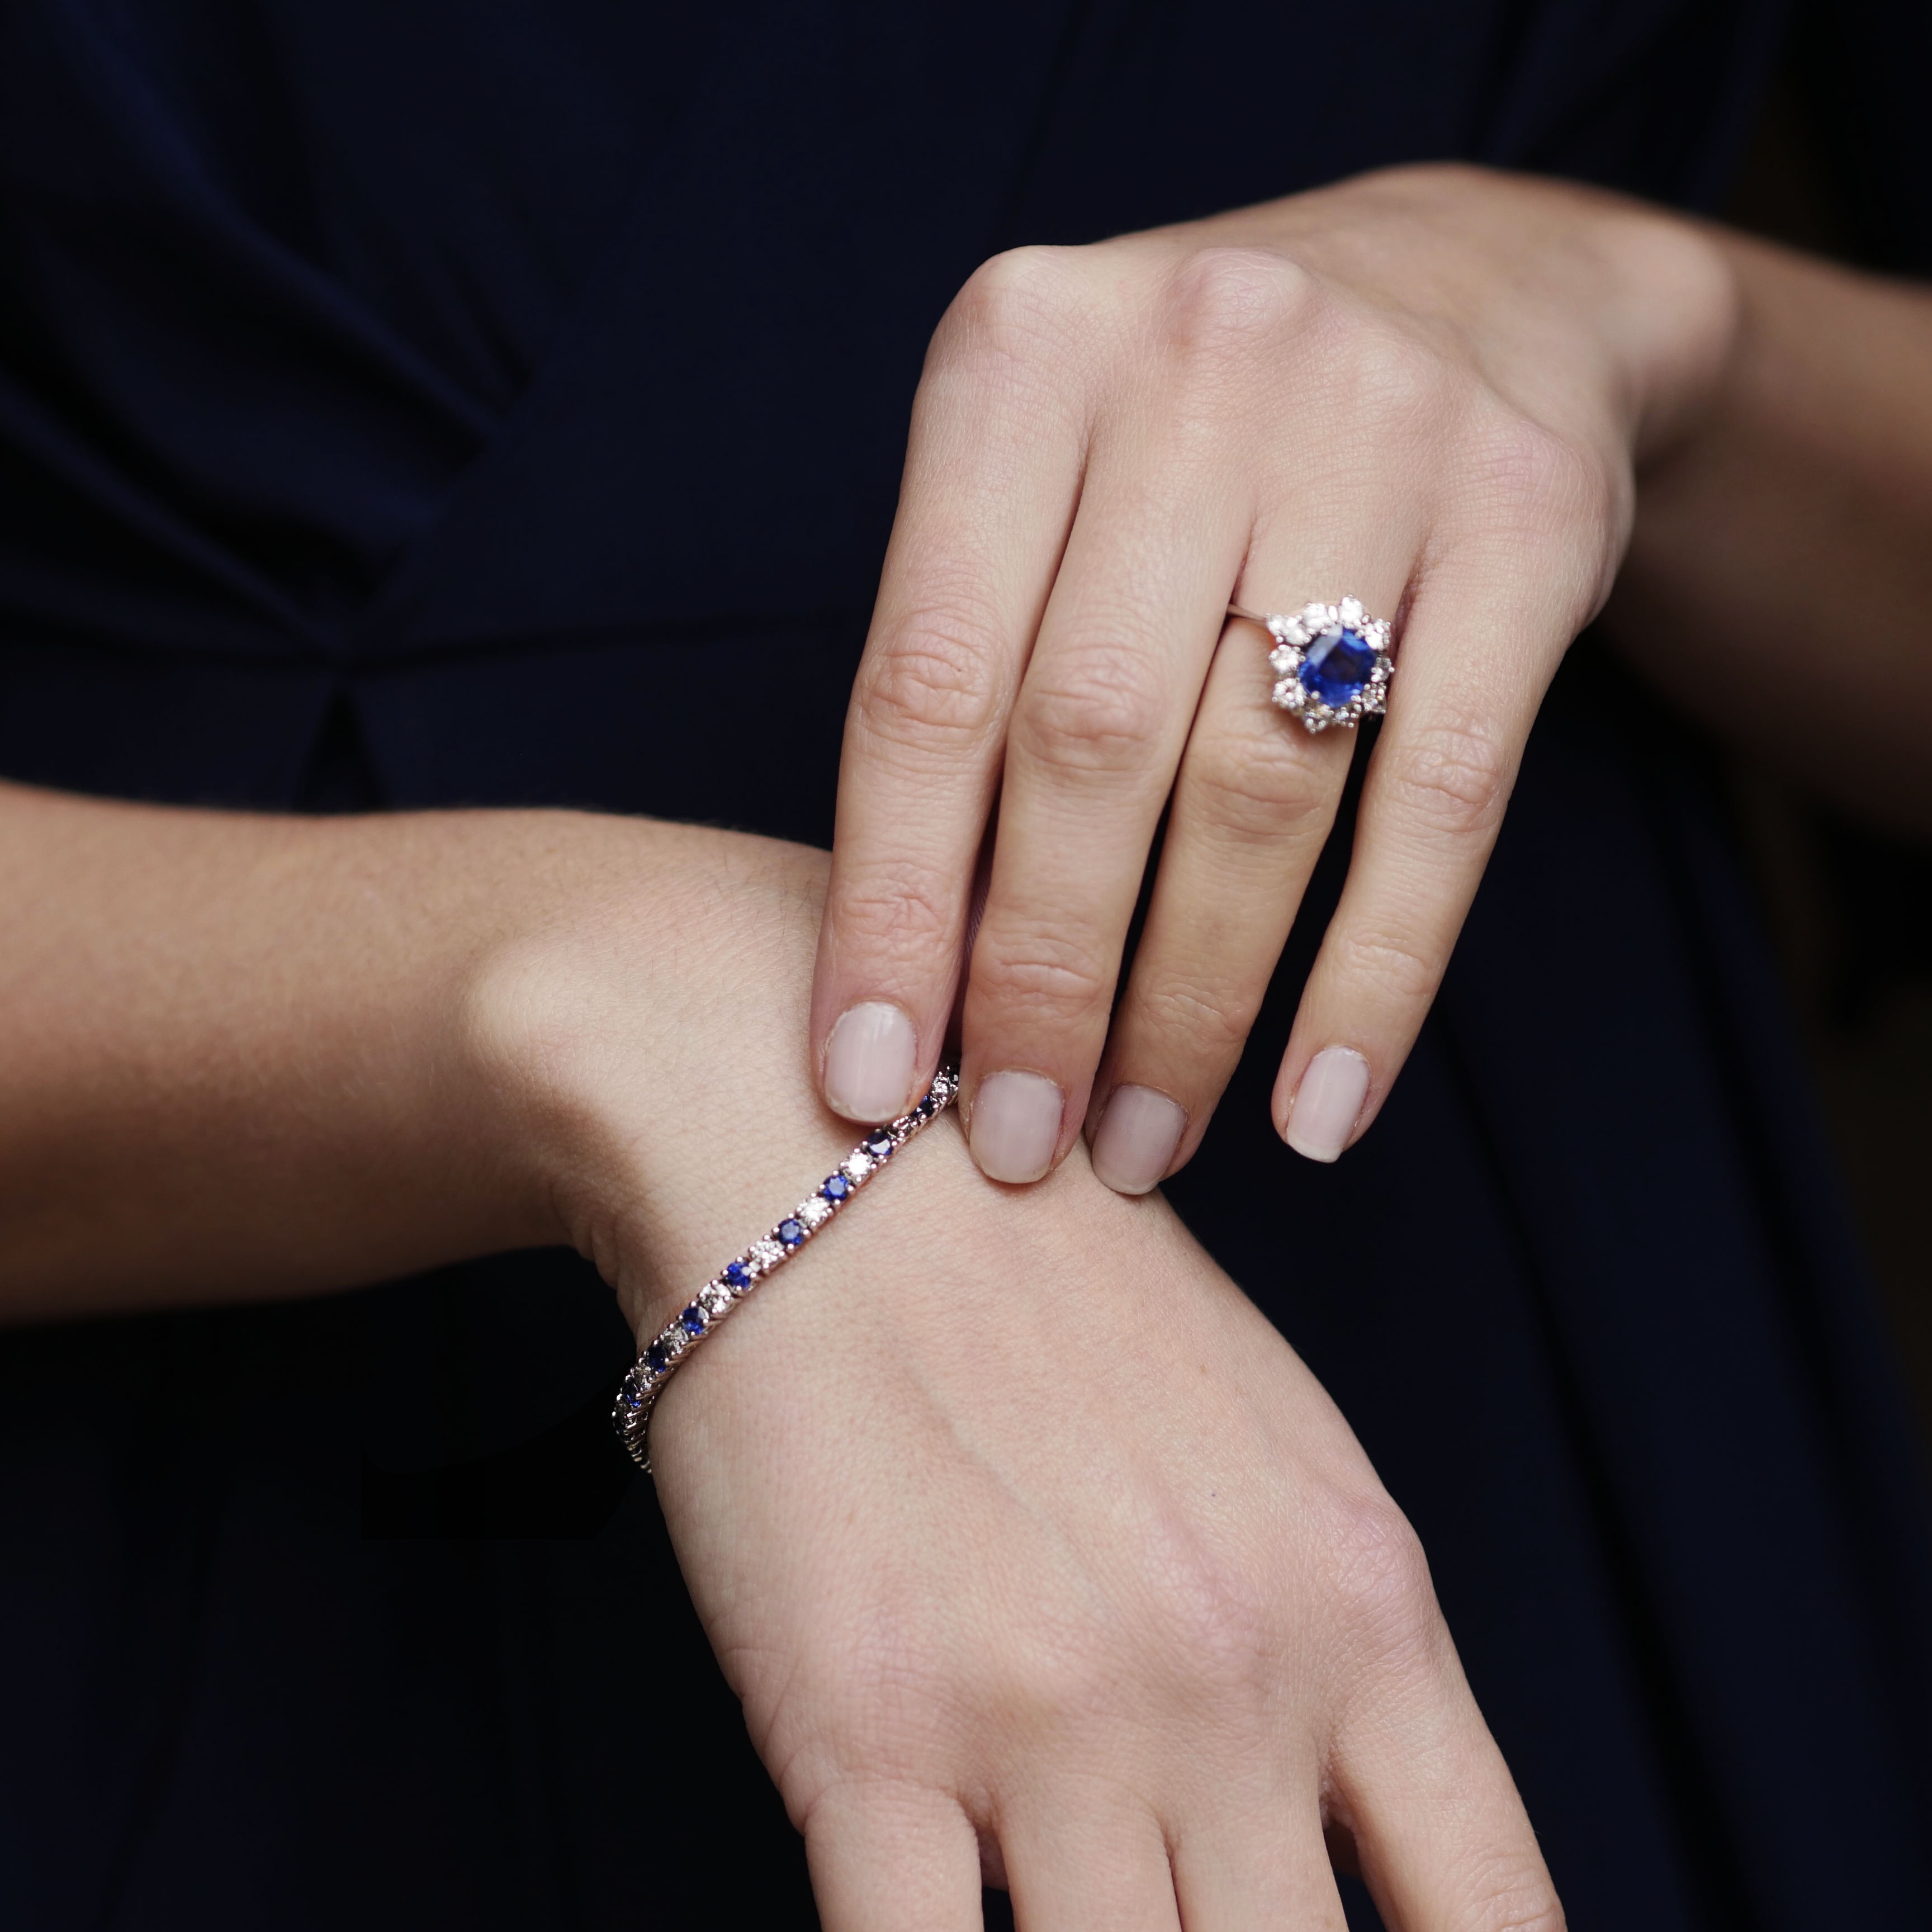 The Colours of September's Birthstone, Sapphire